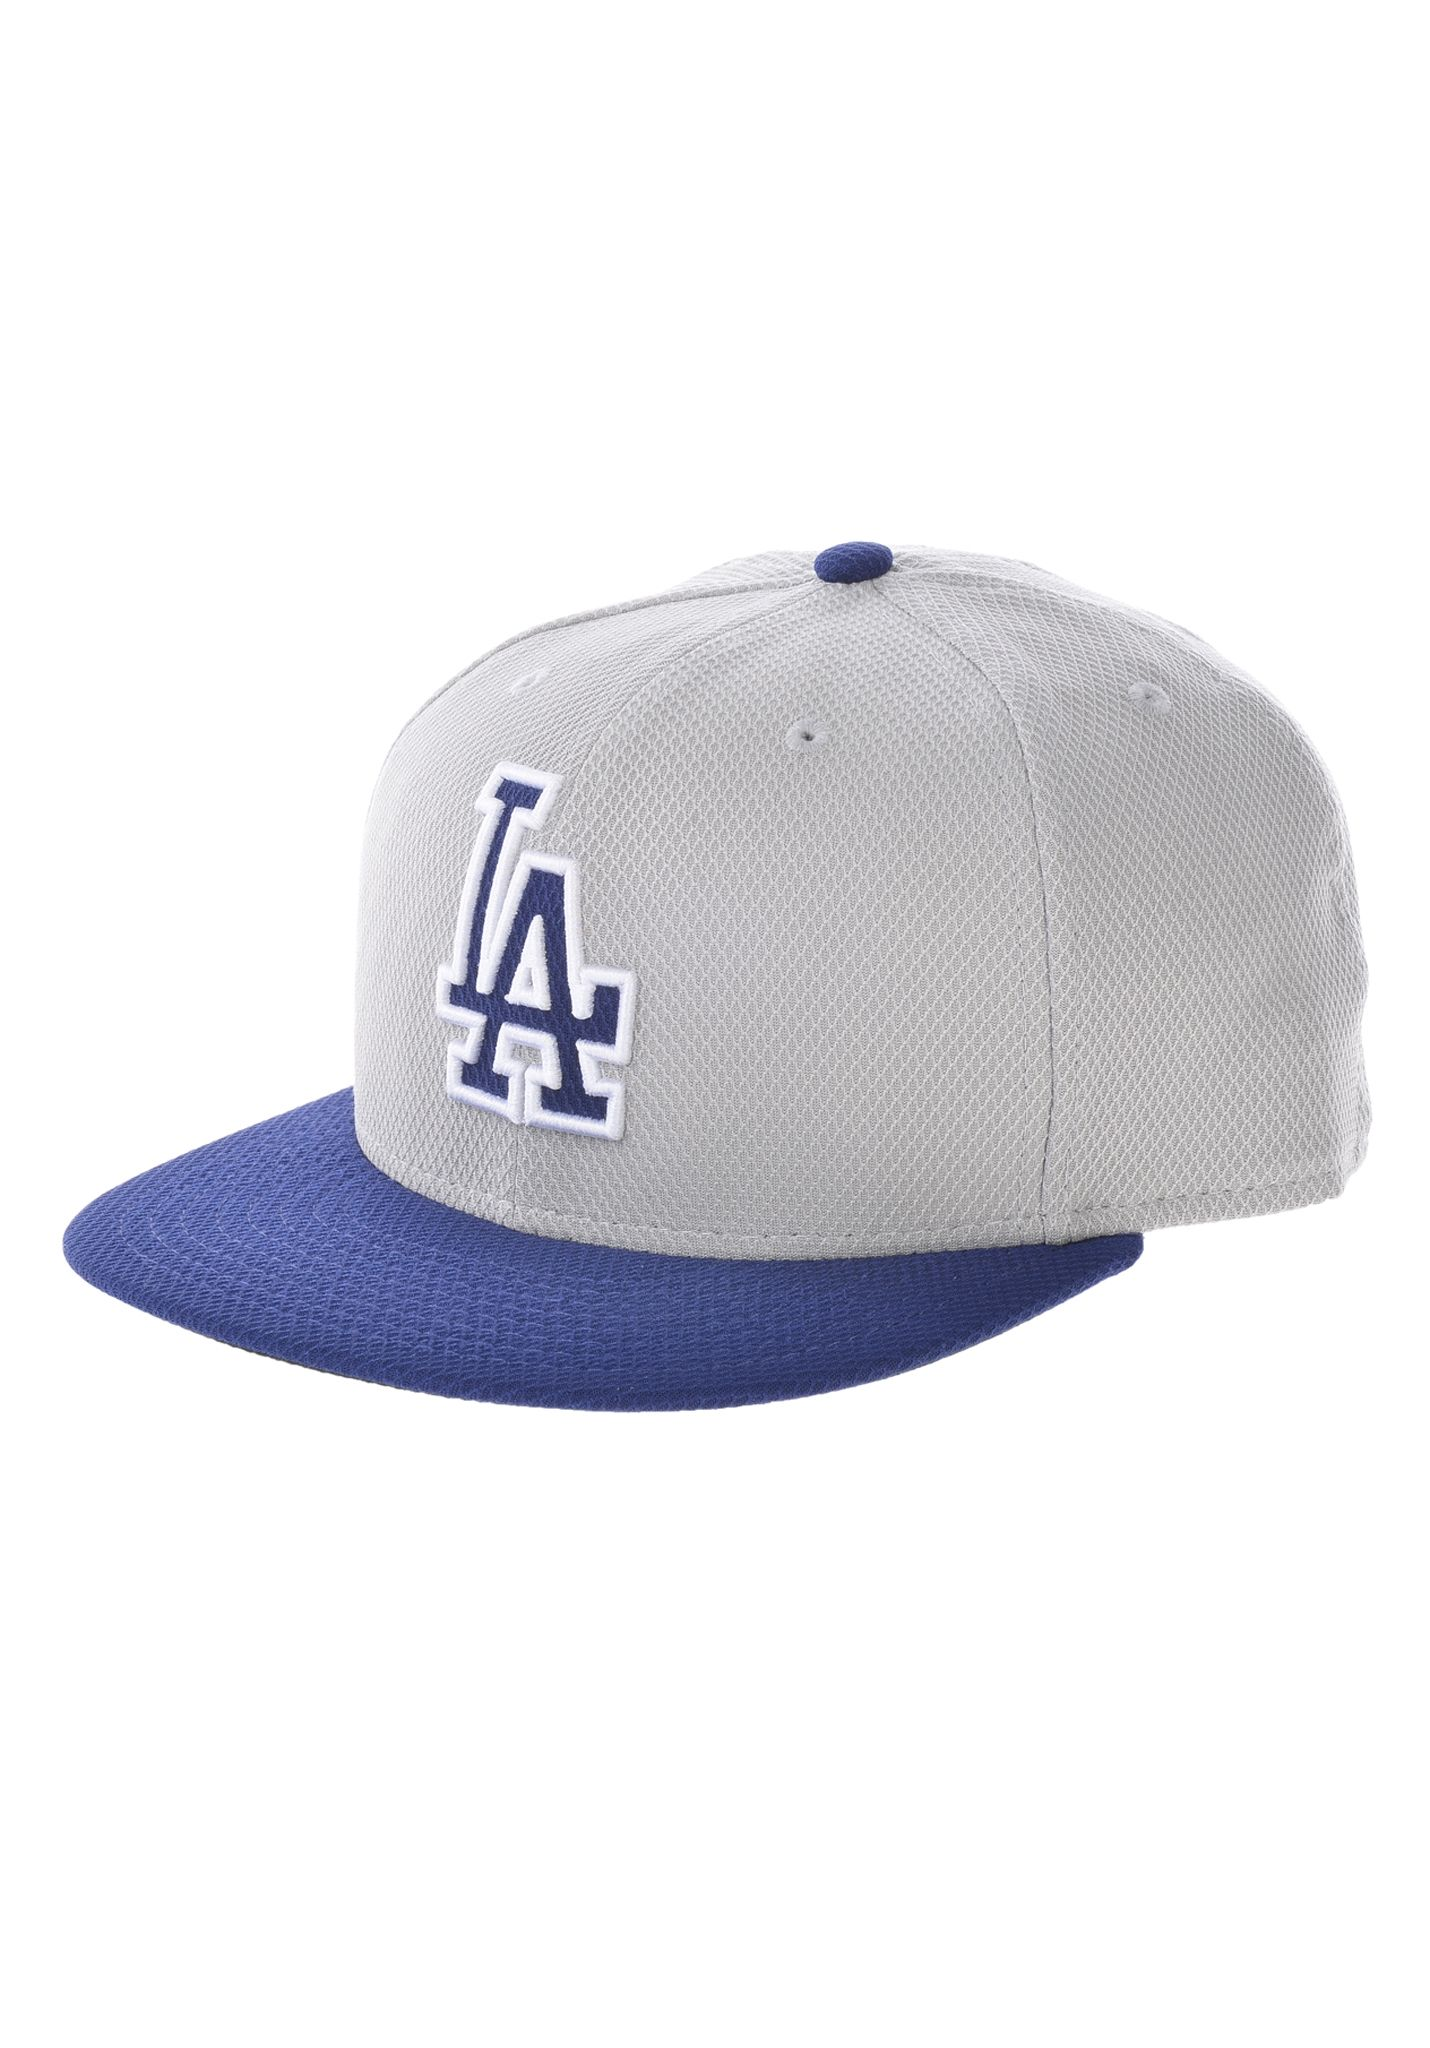 80b66e11f NEW Era 59Fifty Diamond Los Angeles Dodgers - Fitted Cap - Grey - Planet  Sports